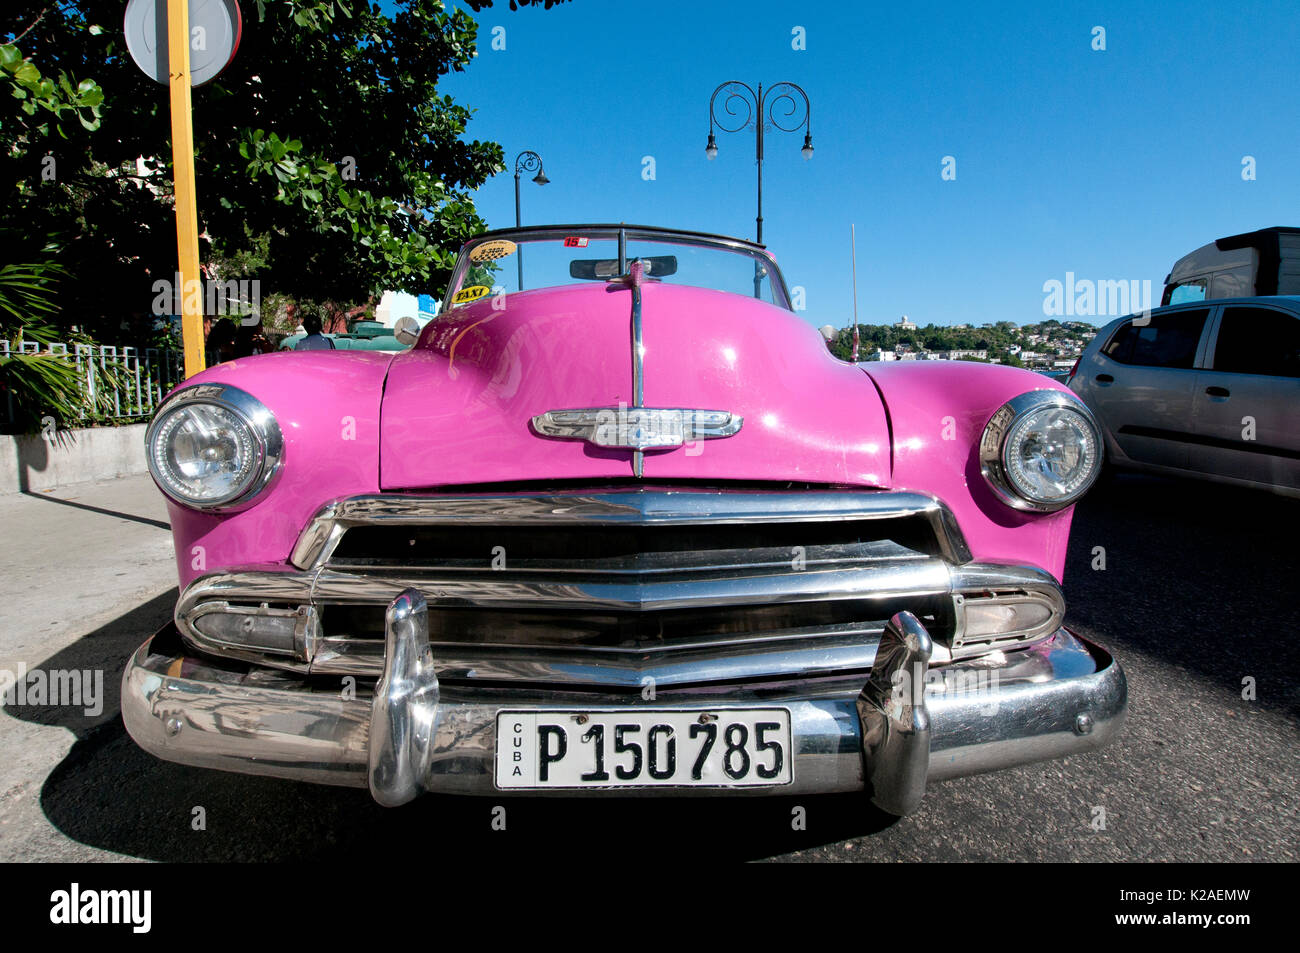 Pink 1953 Chevy convertible taxi parked in Old Havana Cuba - Stock Image